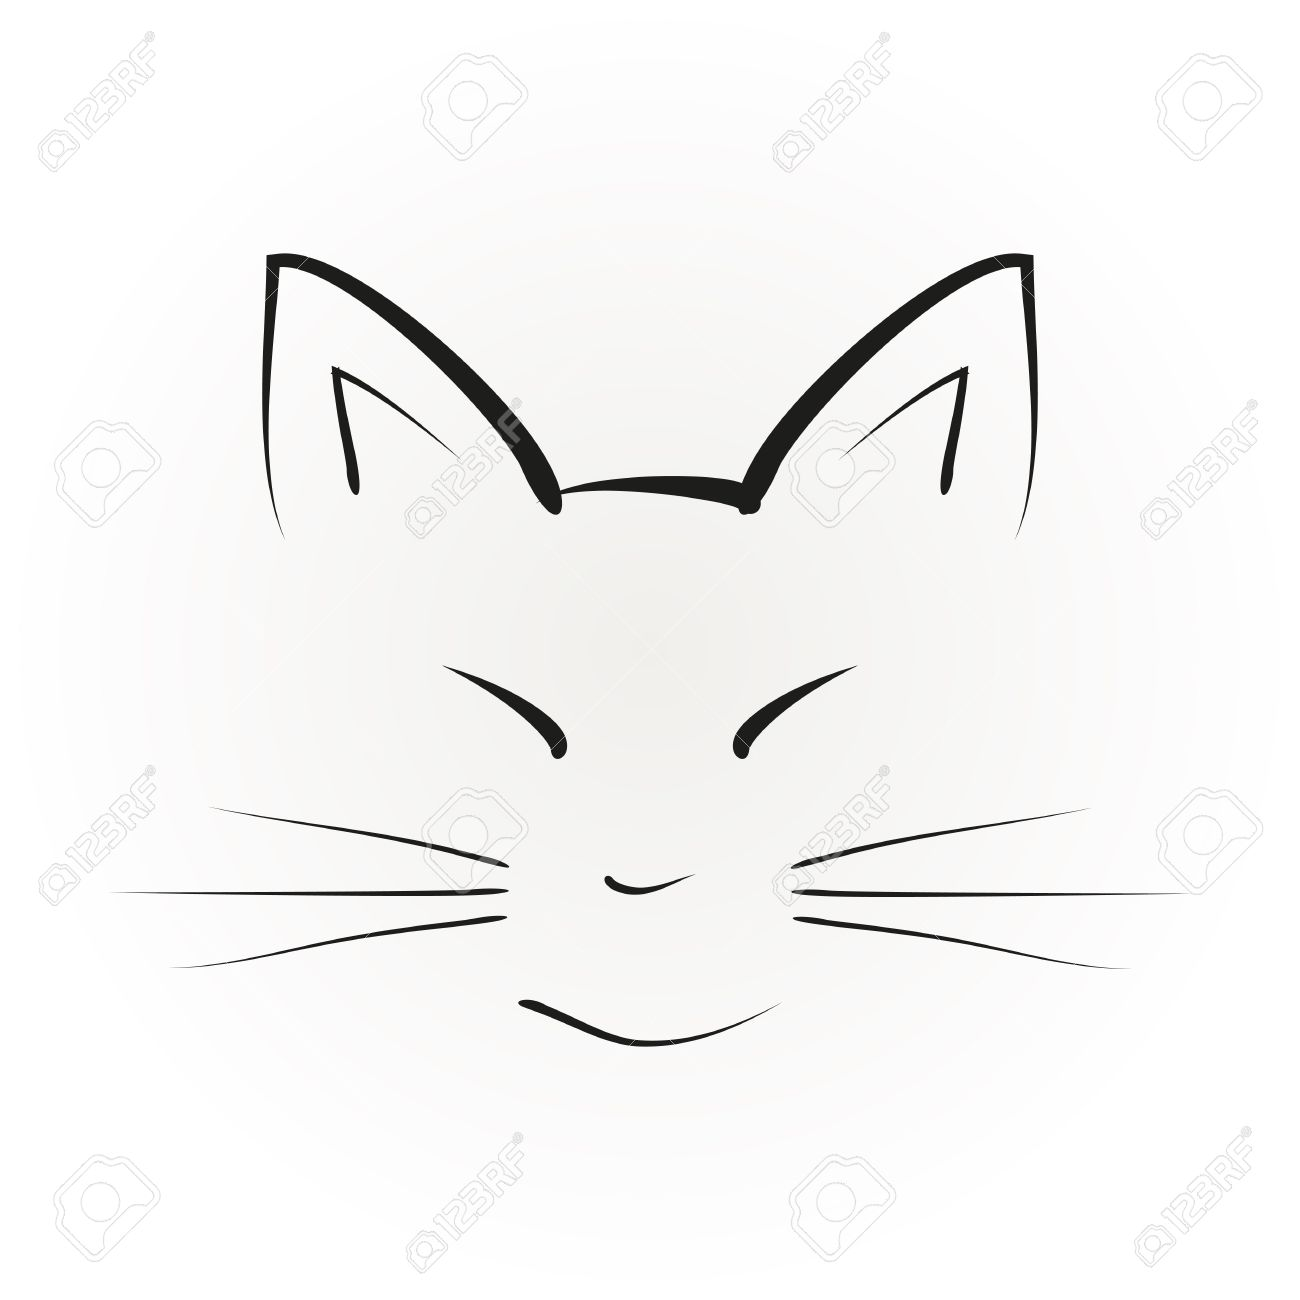 Silhouette Of A Cat Face With Big Ears Painted Black Brush Strokes Abstract Illustration